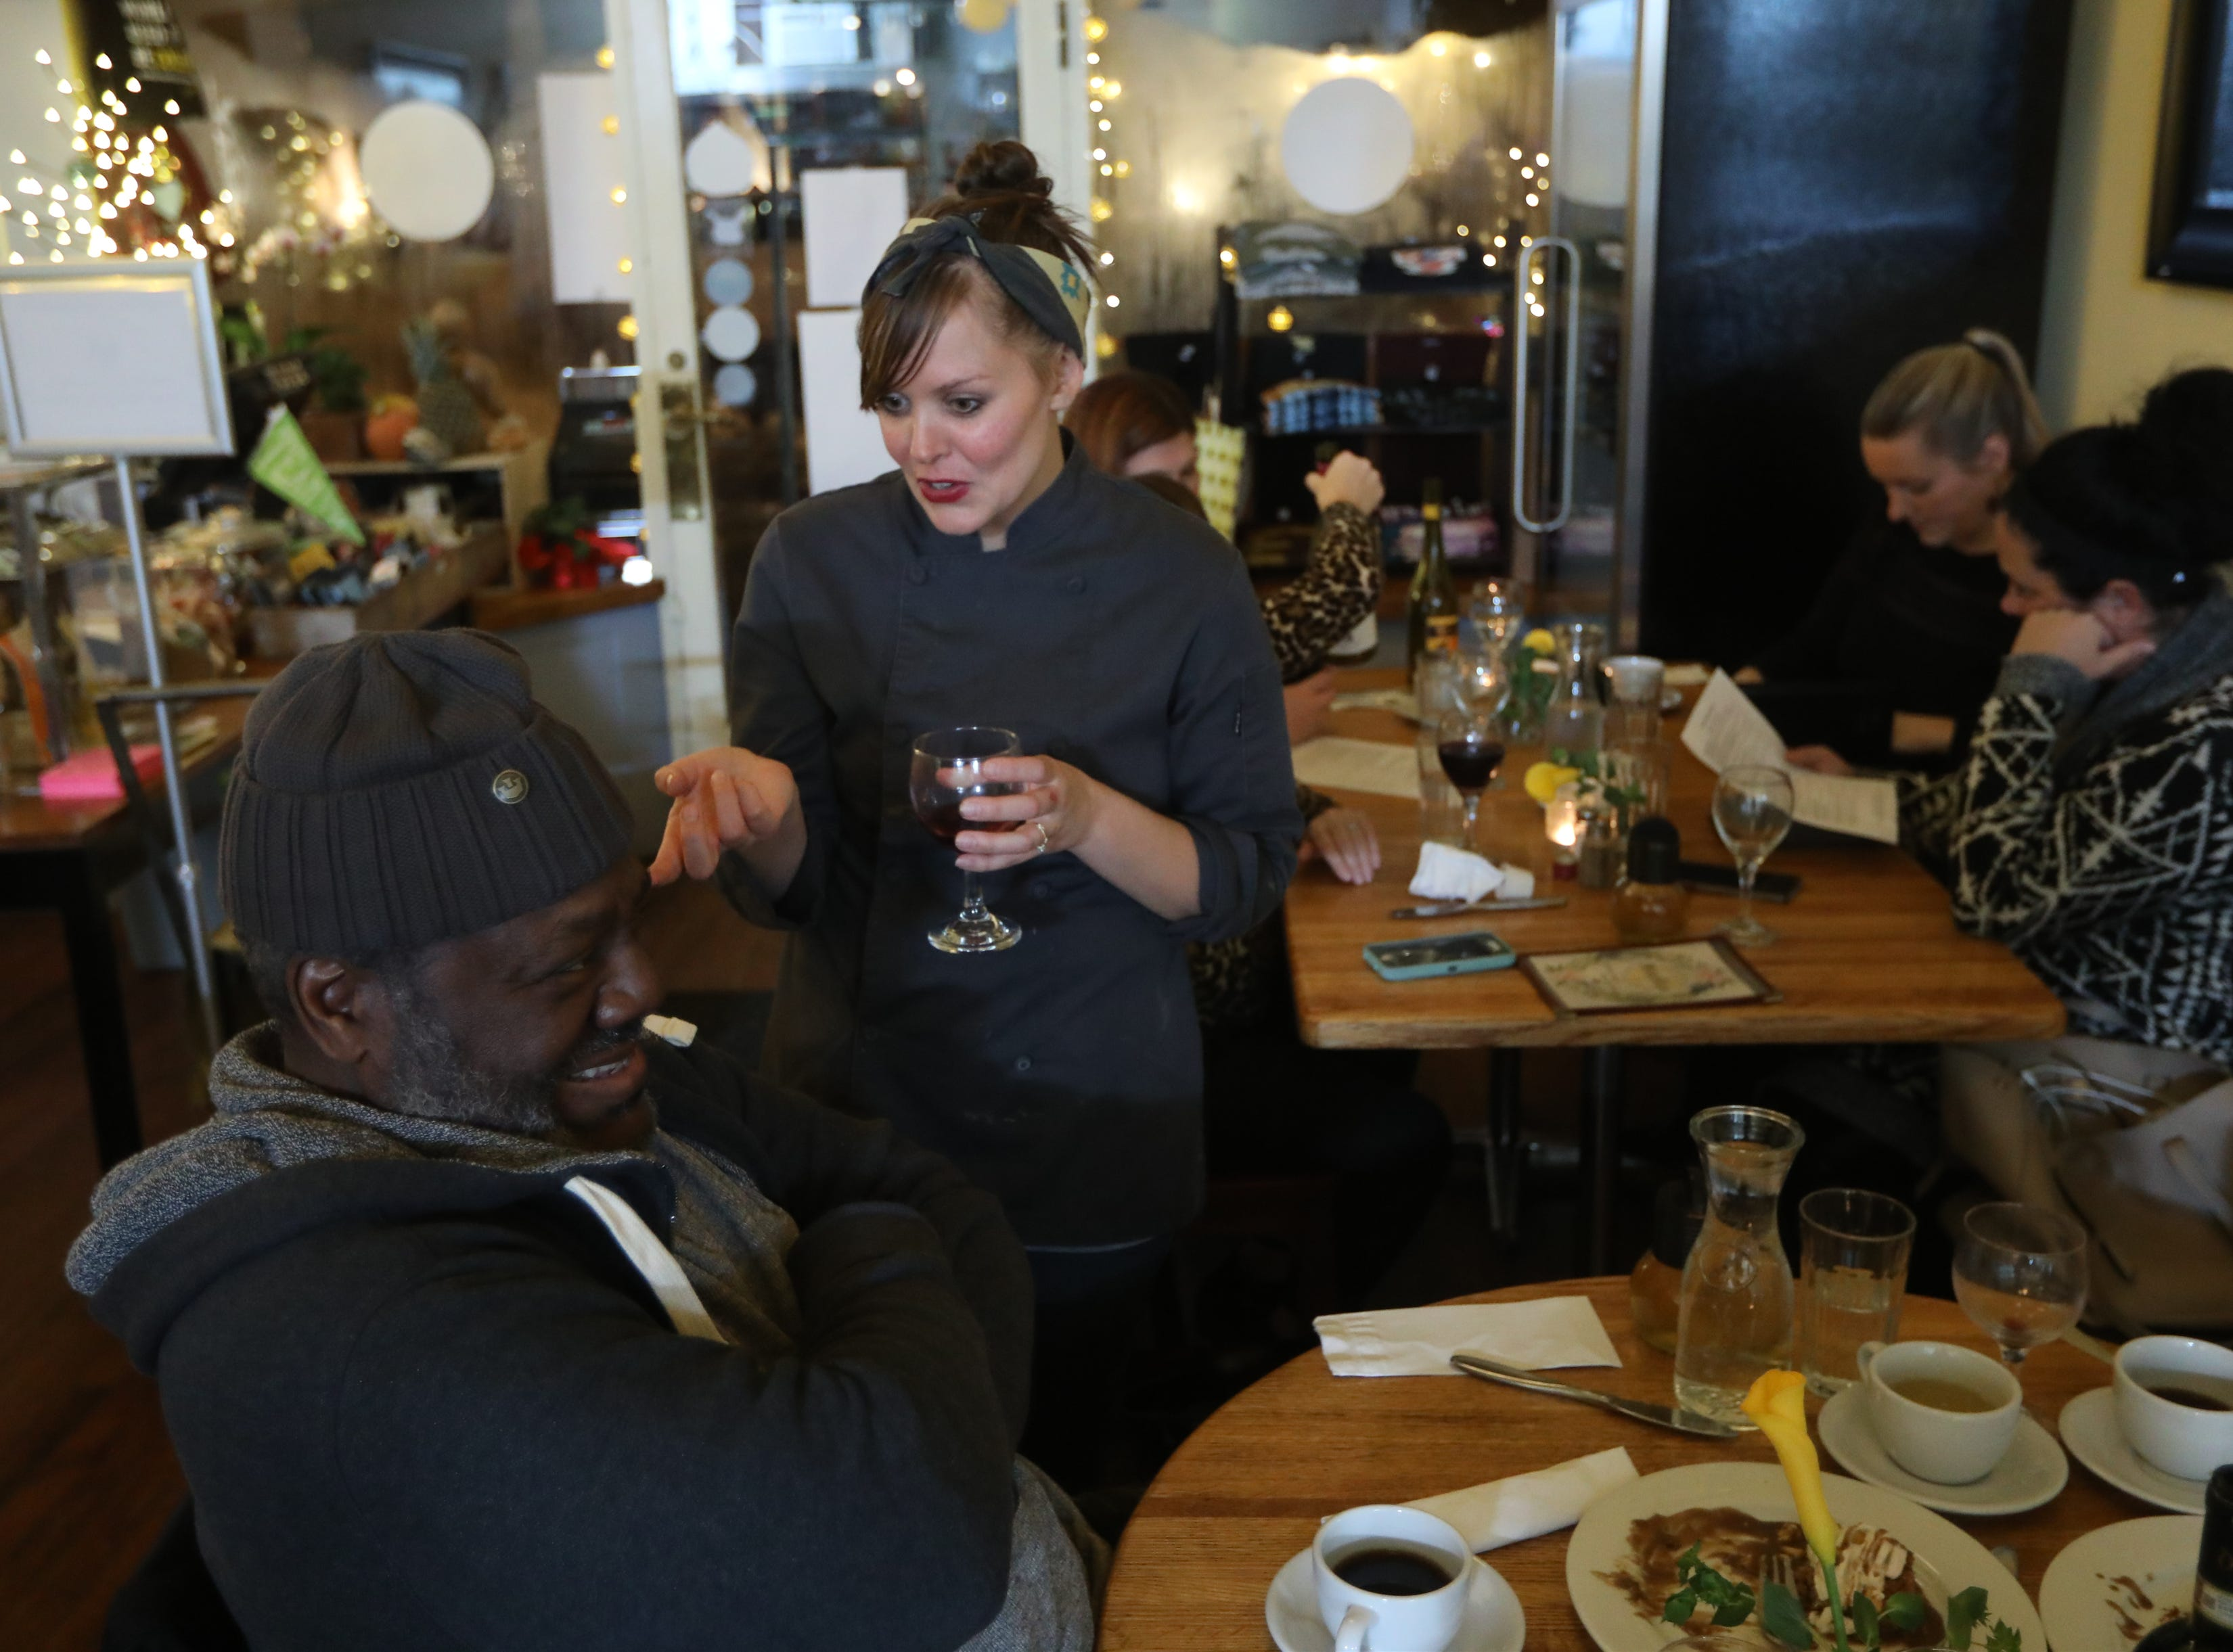 Frankie Faison, of Bloomfield speaks with chef, Sally Owens at a pop-up dinner earlier this year.